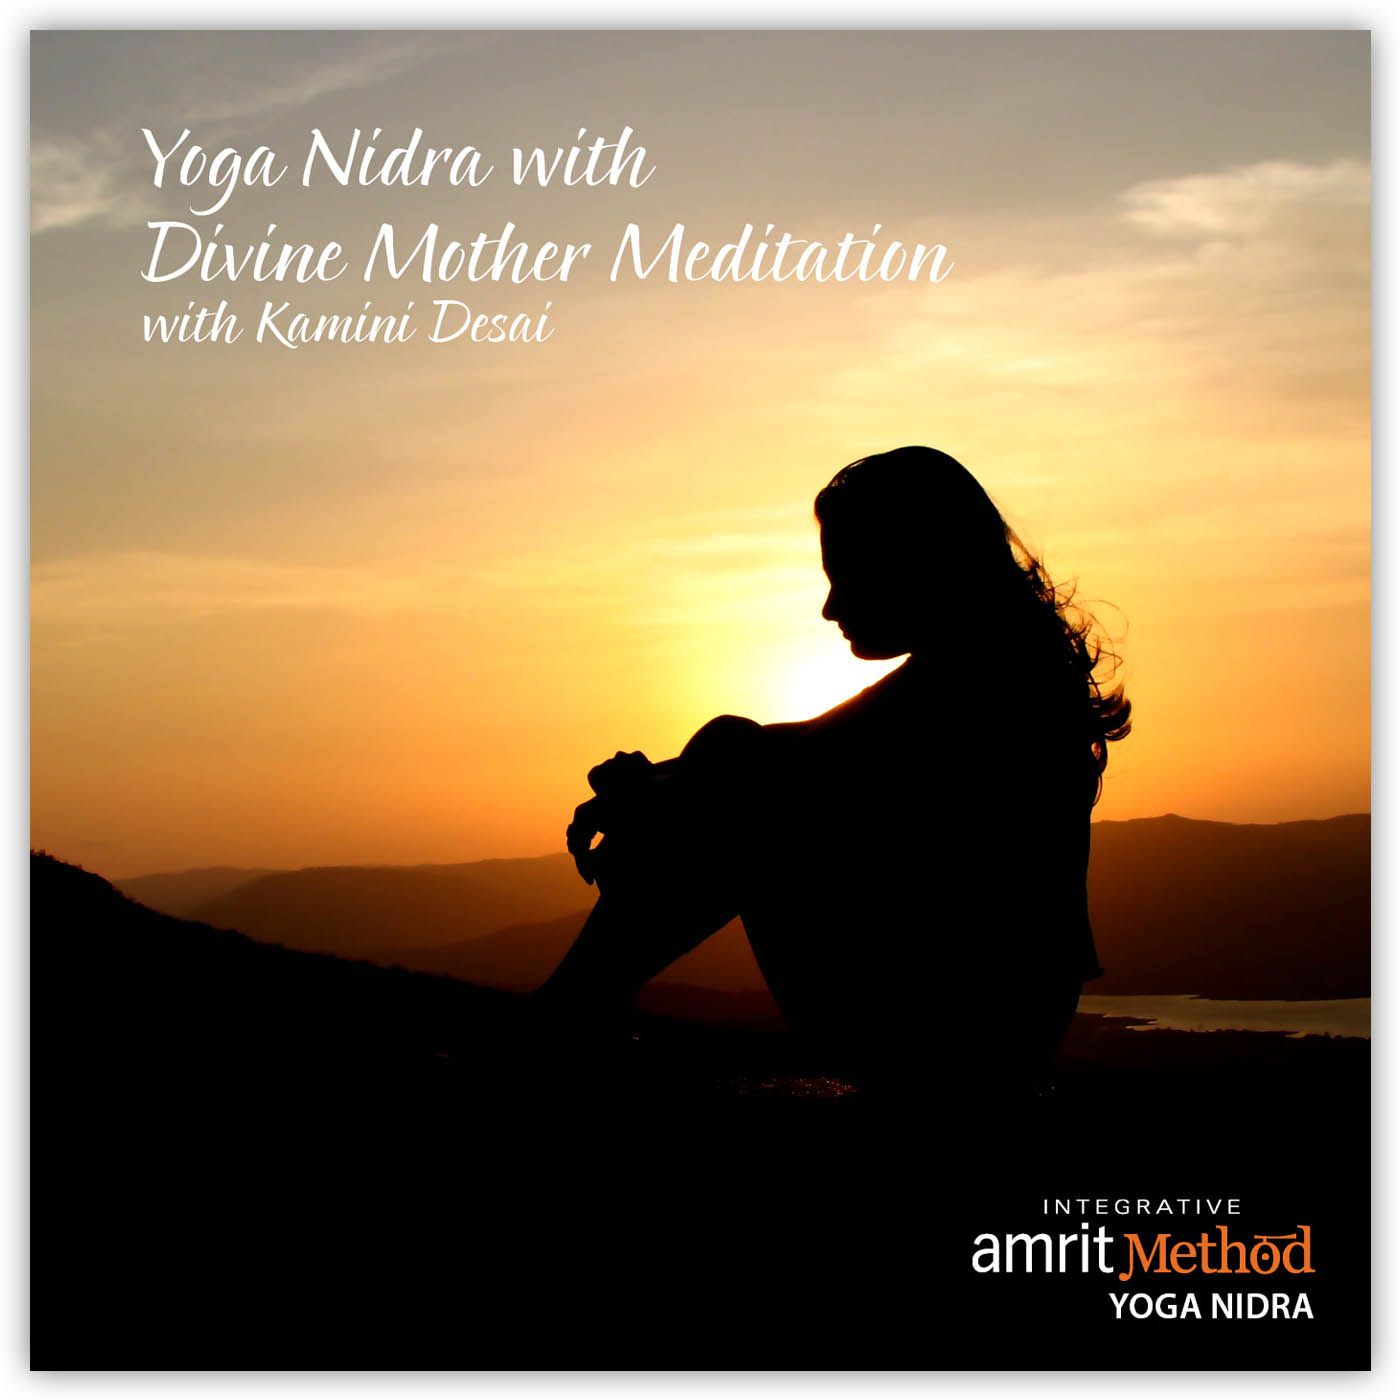 Yoga Nidra With Divine Mother Meditation Kamini Desai PhD CD Or Digital Download